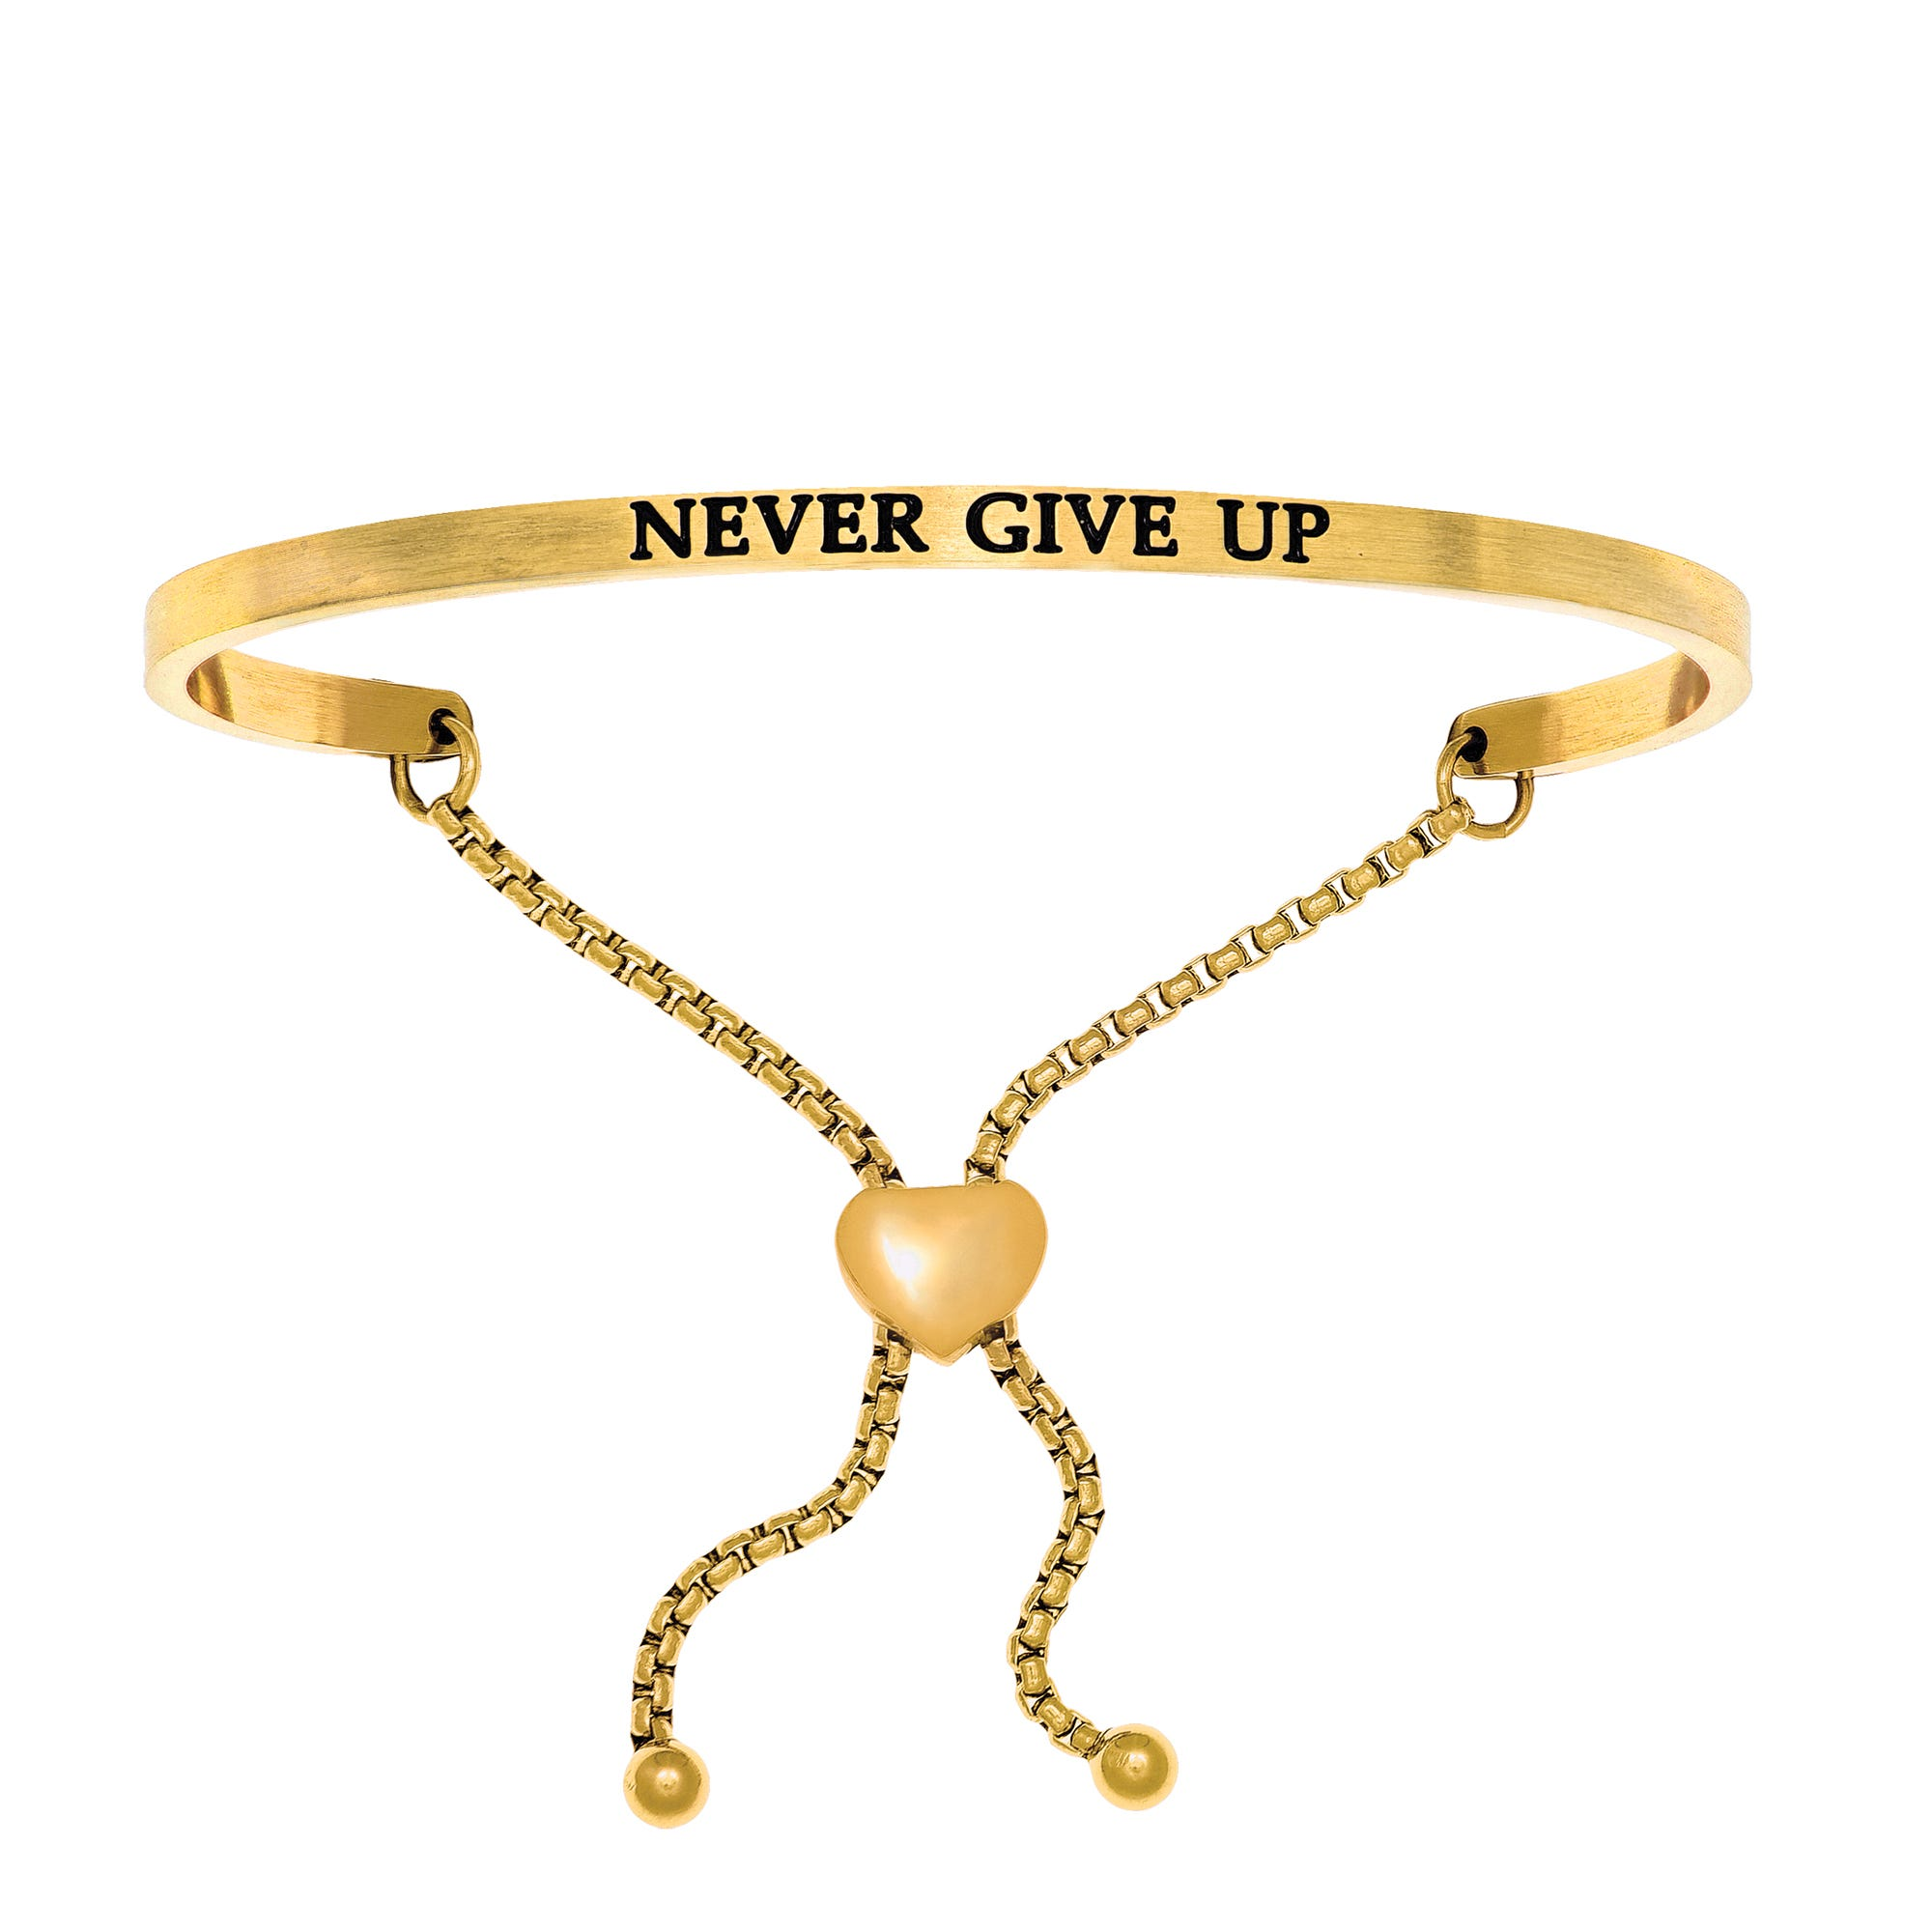 Never Give Up. Intuitions Bolo Bracelet in Yellow Stainless Steel